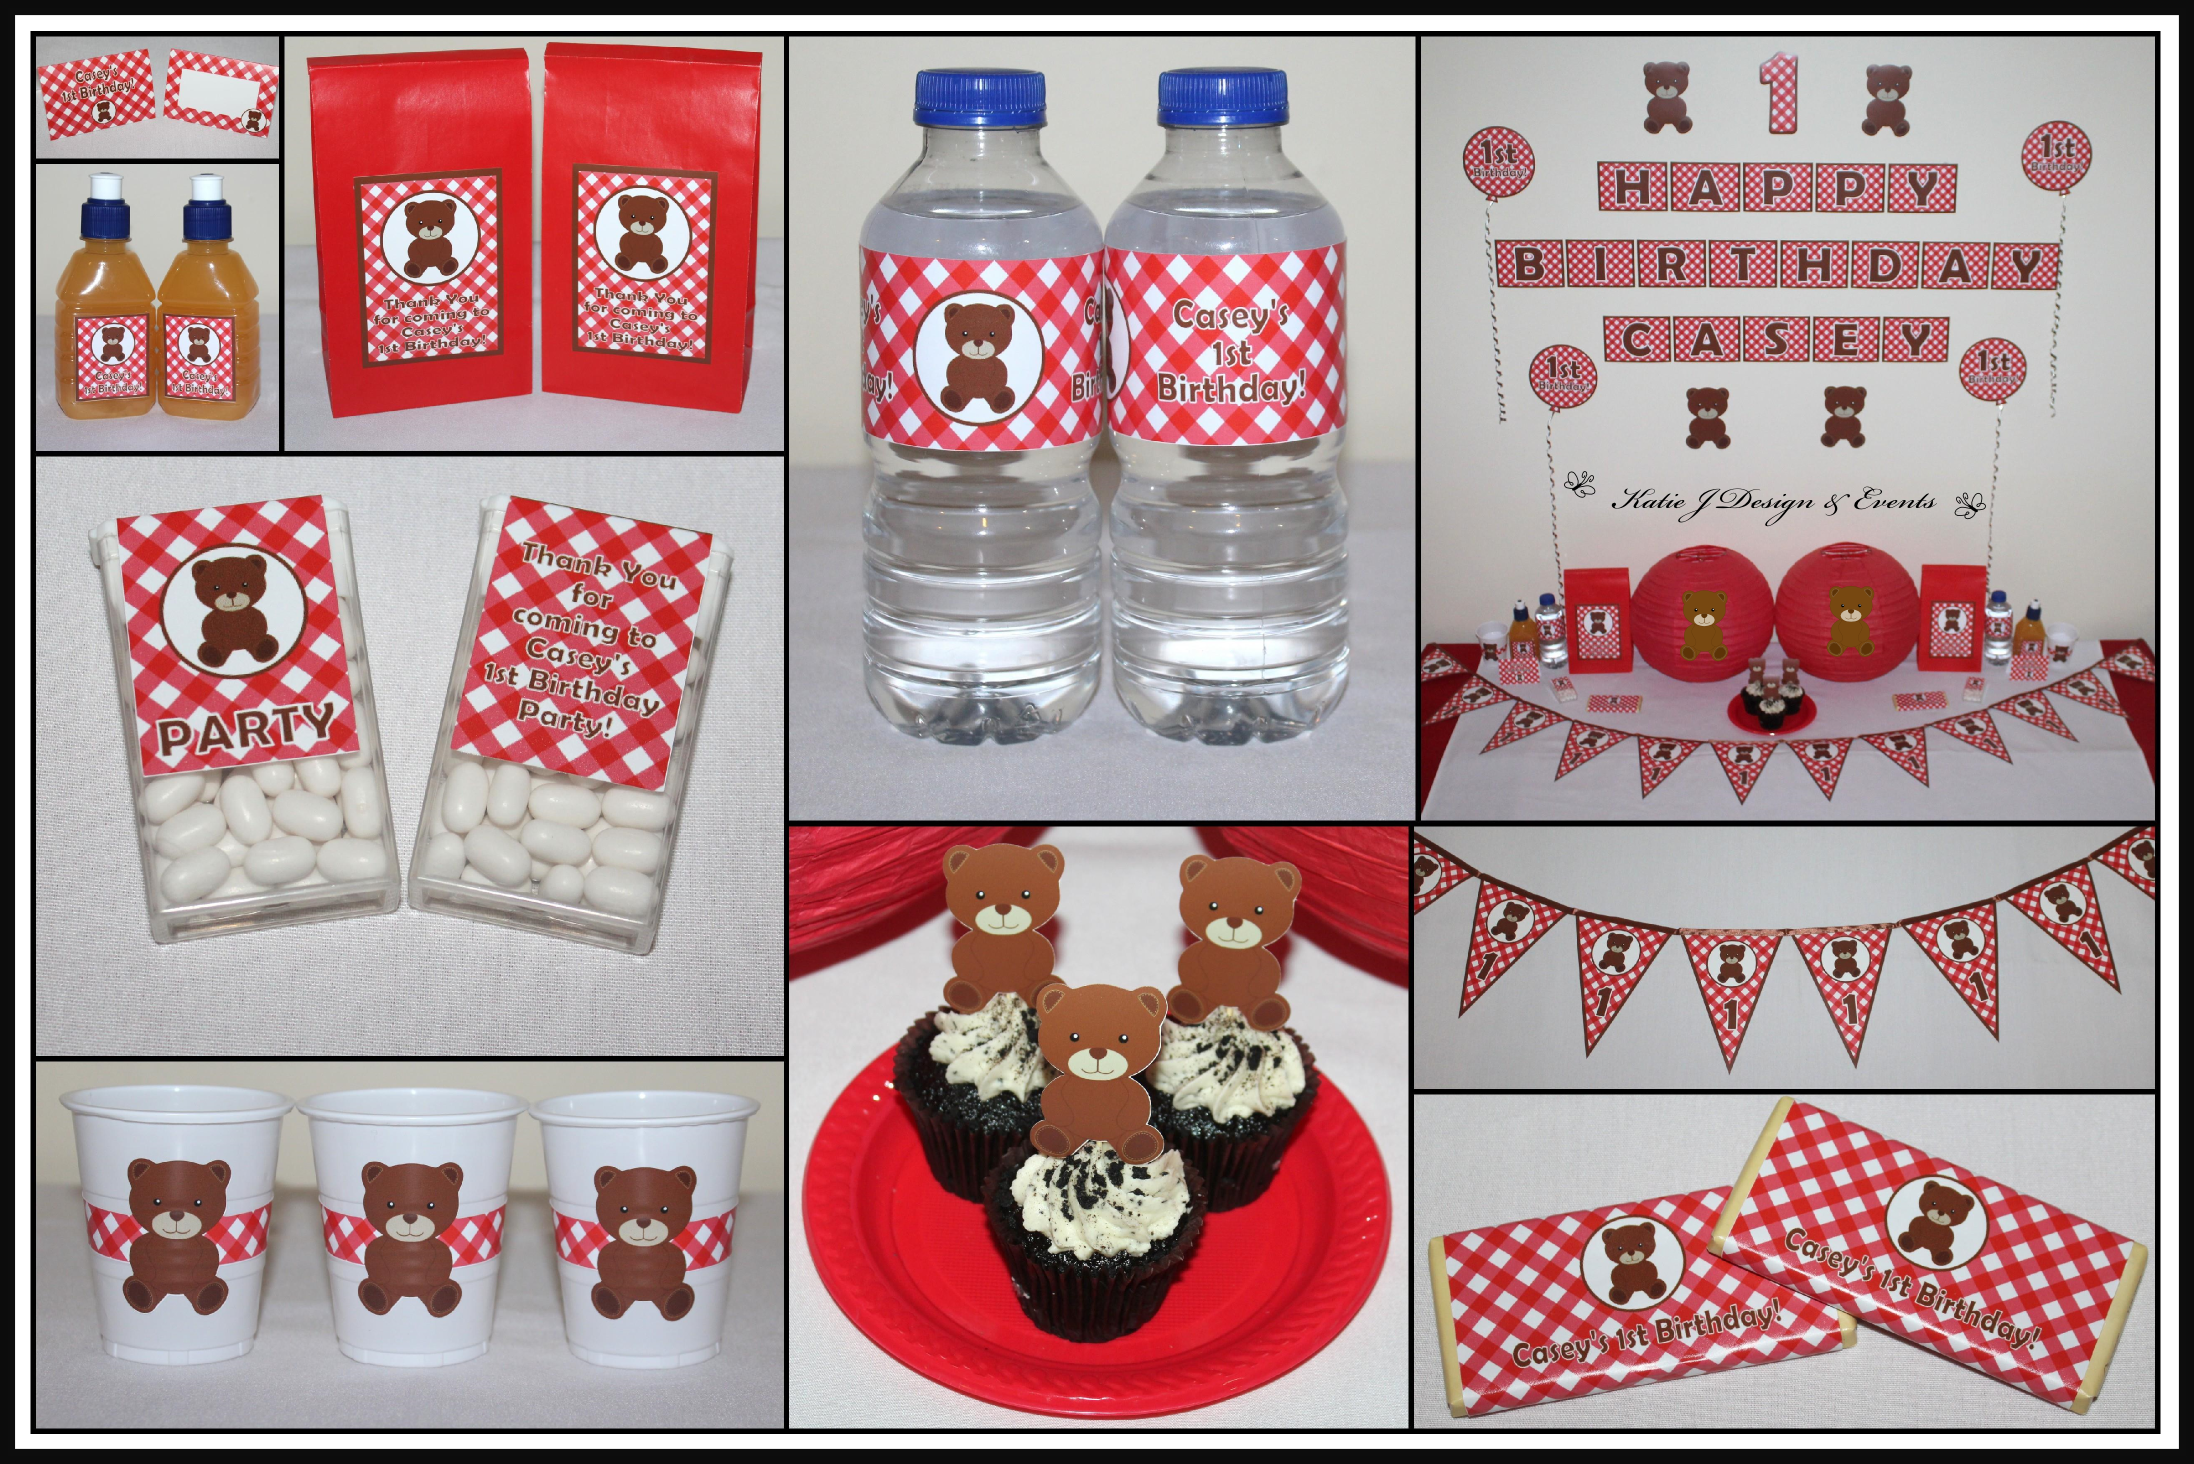 Shop Online PERSONALISED TEDDY BEARS PICNIC Party Decorations